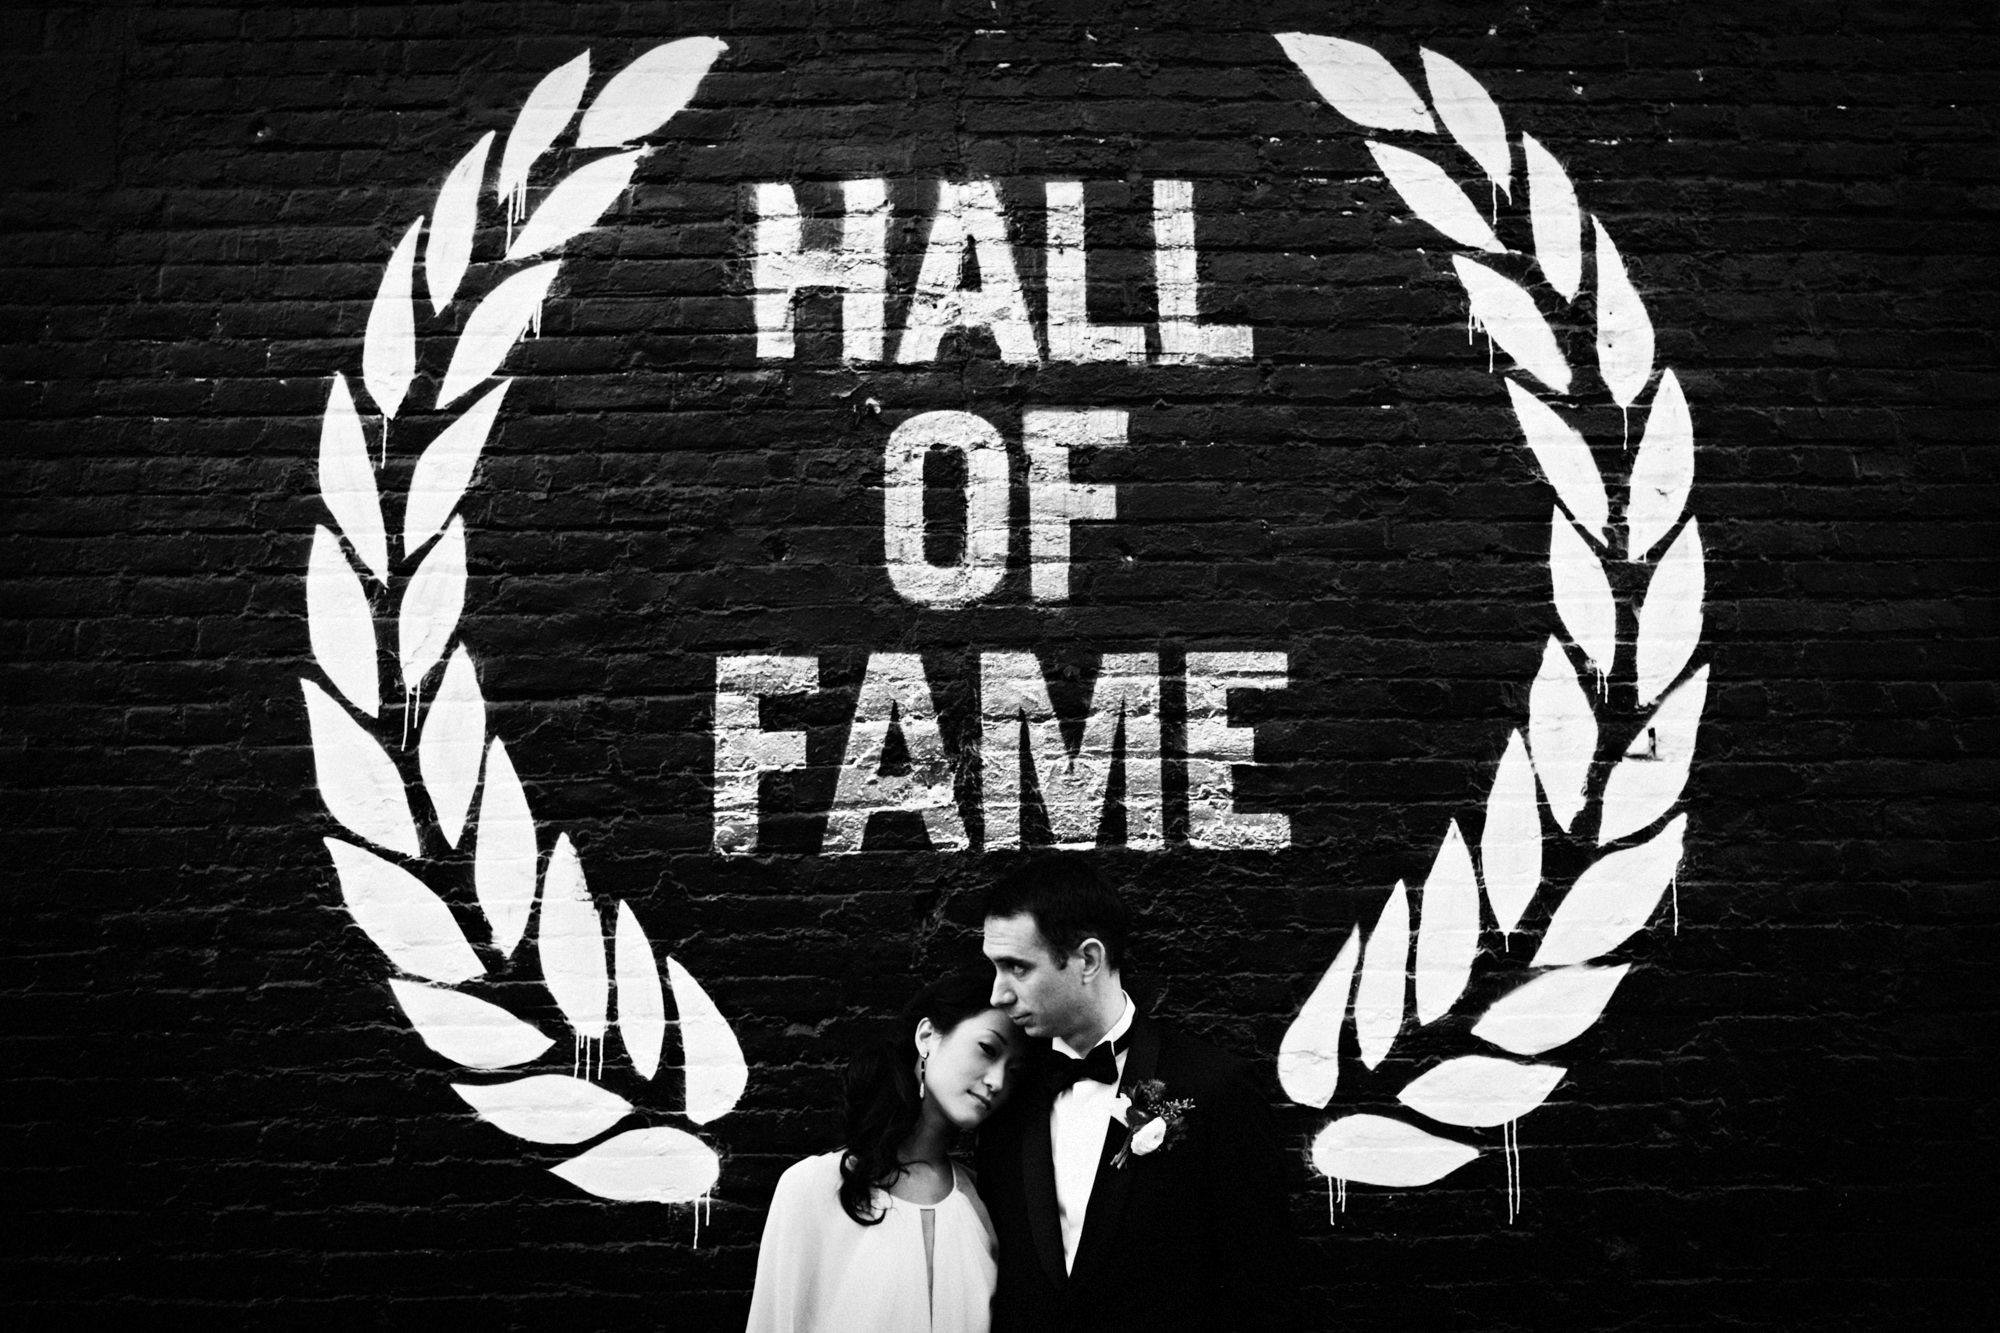 Hall of Fame portrait photo by Jenny Jimenez